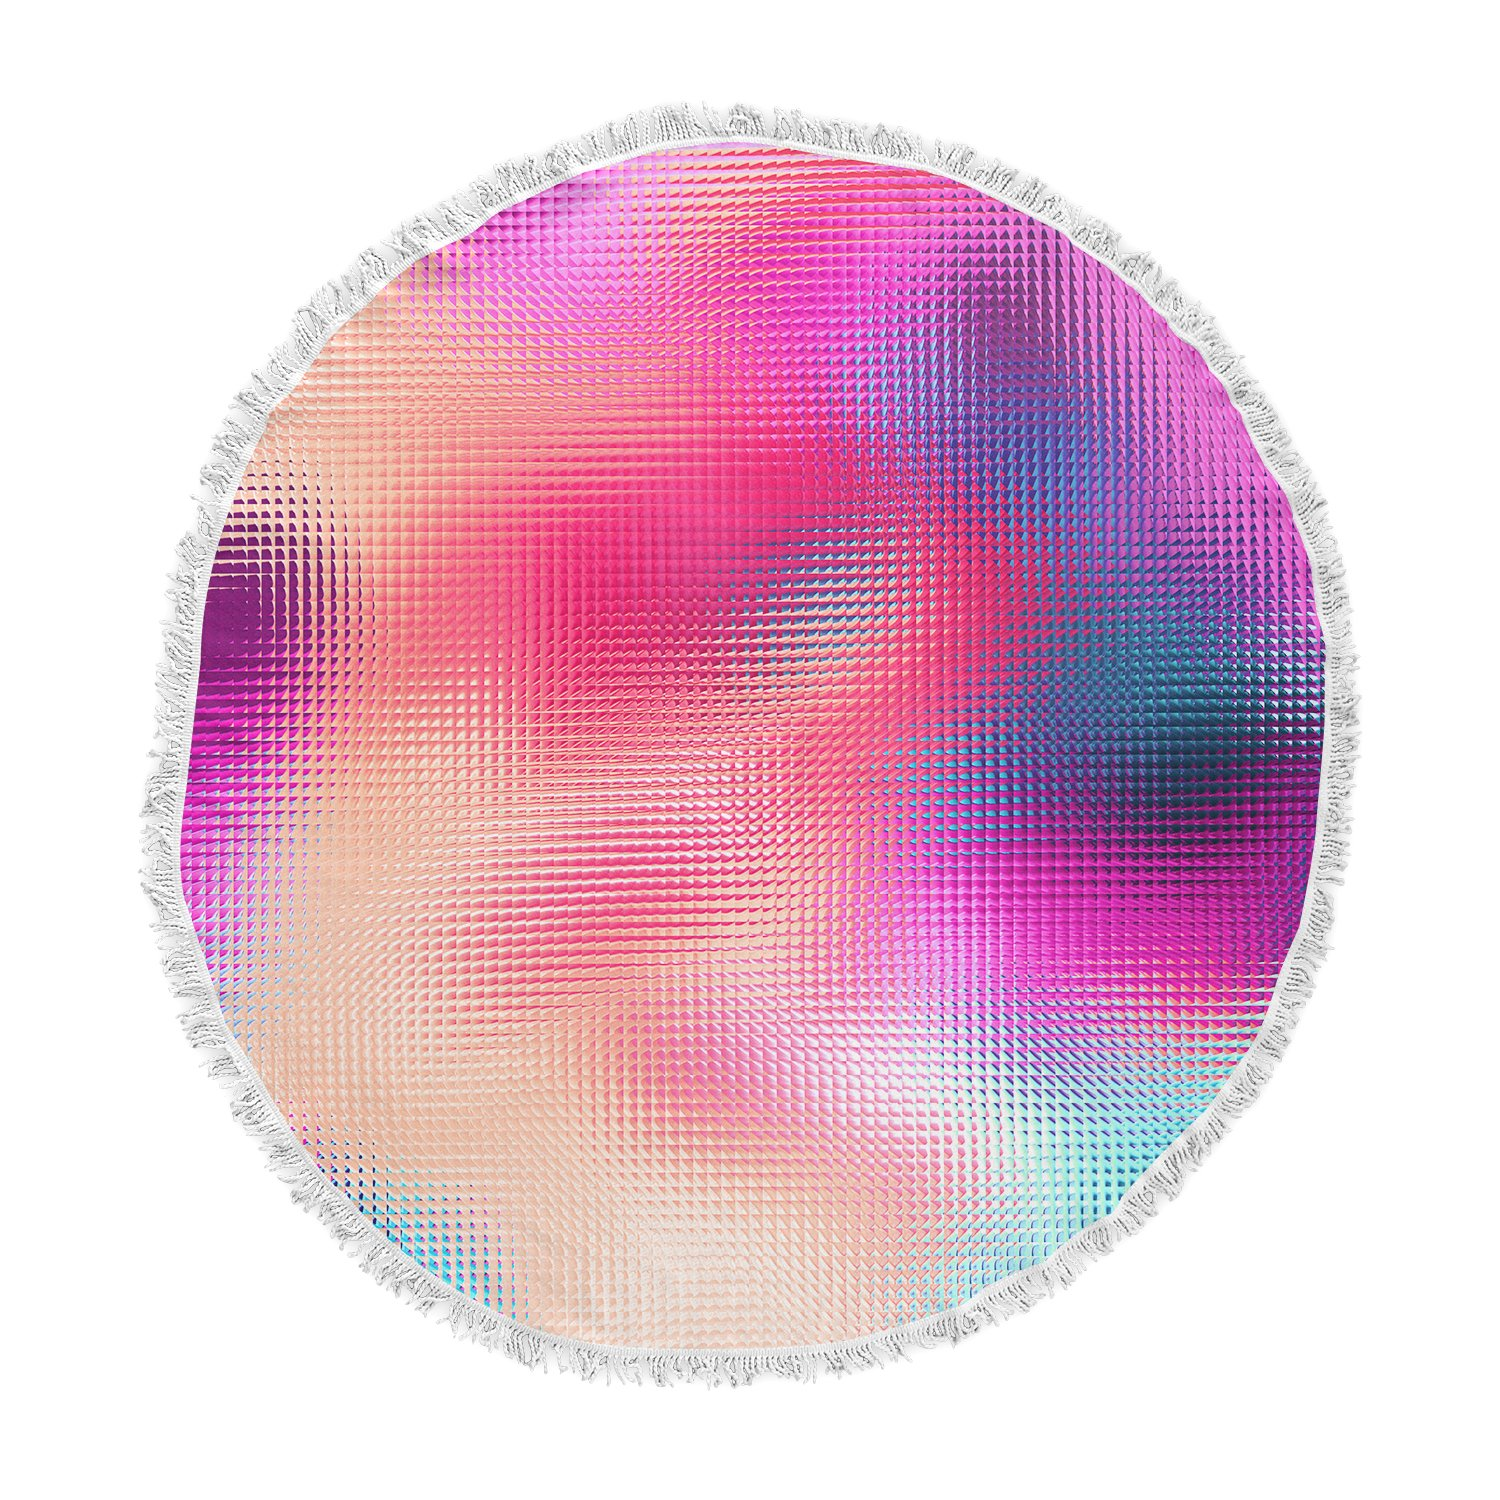 Kess InHouse Danny Ivan Bastard Abstract Round Beach Towel Blanket